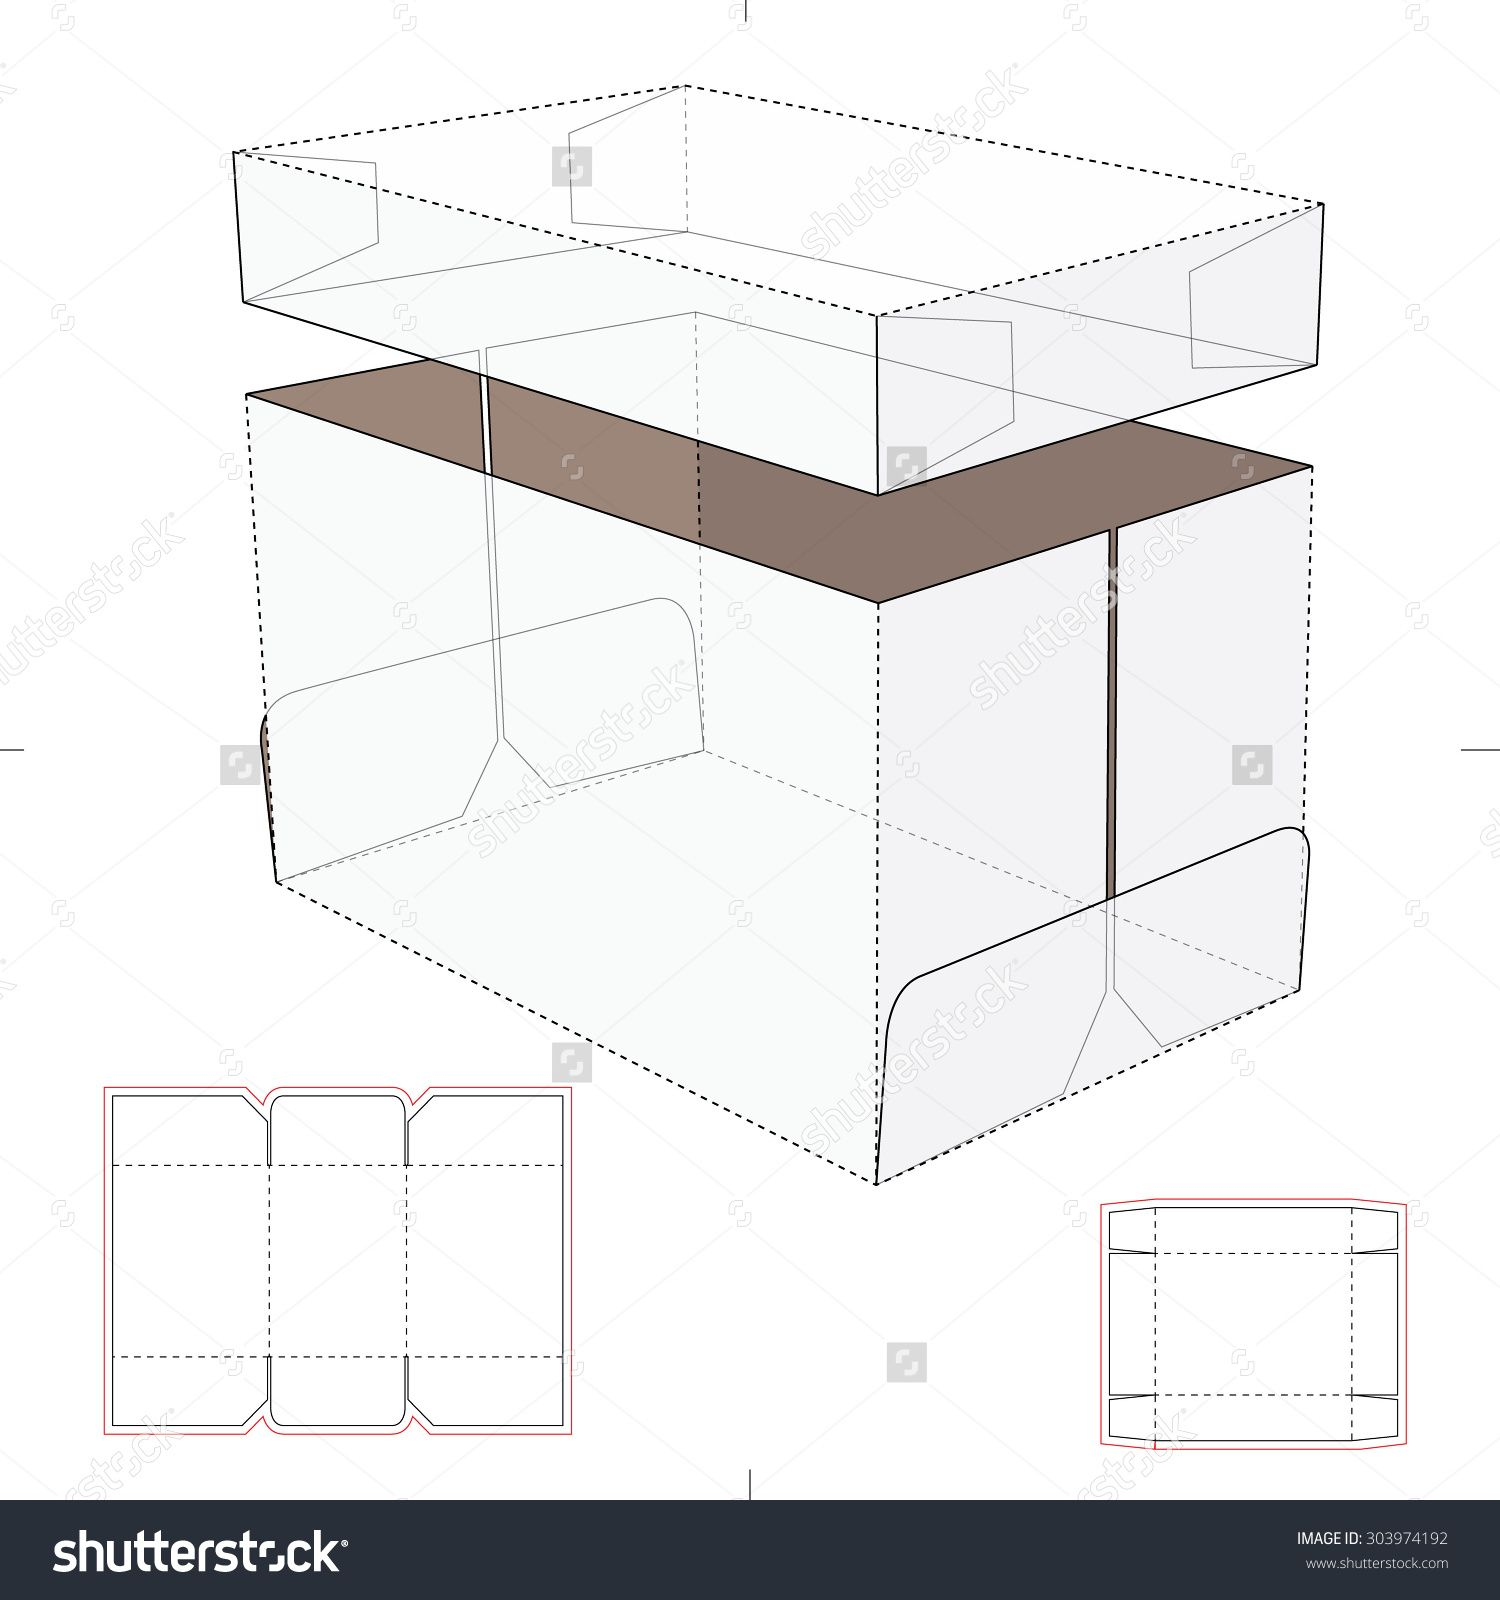 Storage box with lid and tray and blueprint template stock vector storage box with lid and tray and blueprint template stock vector illustration malvernweather Image collections